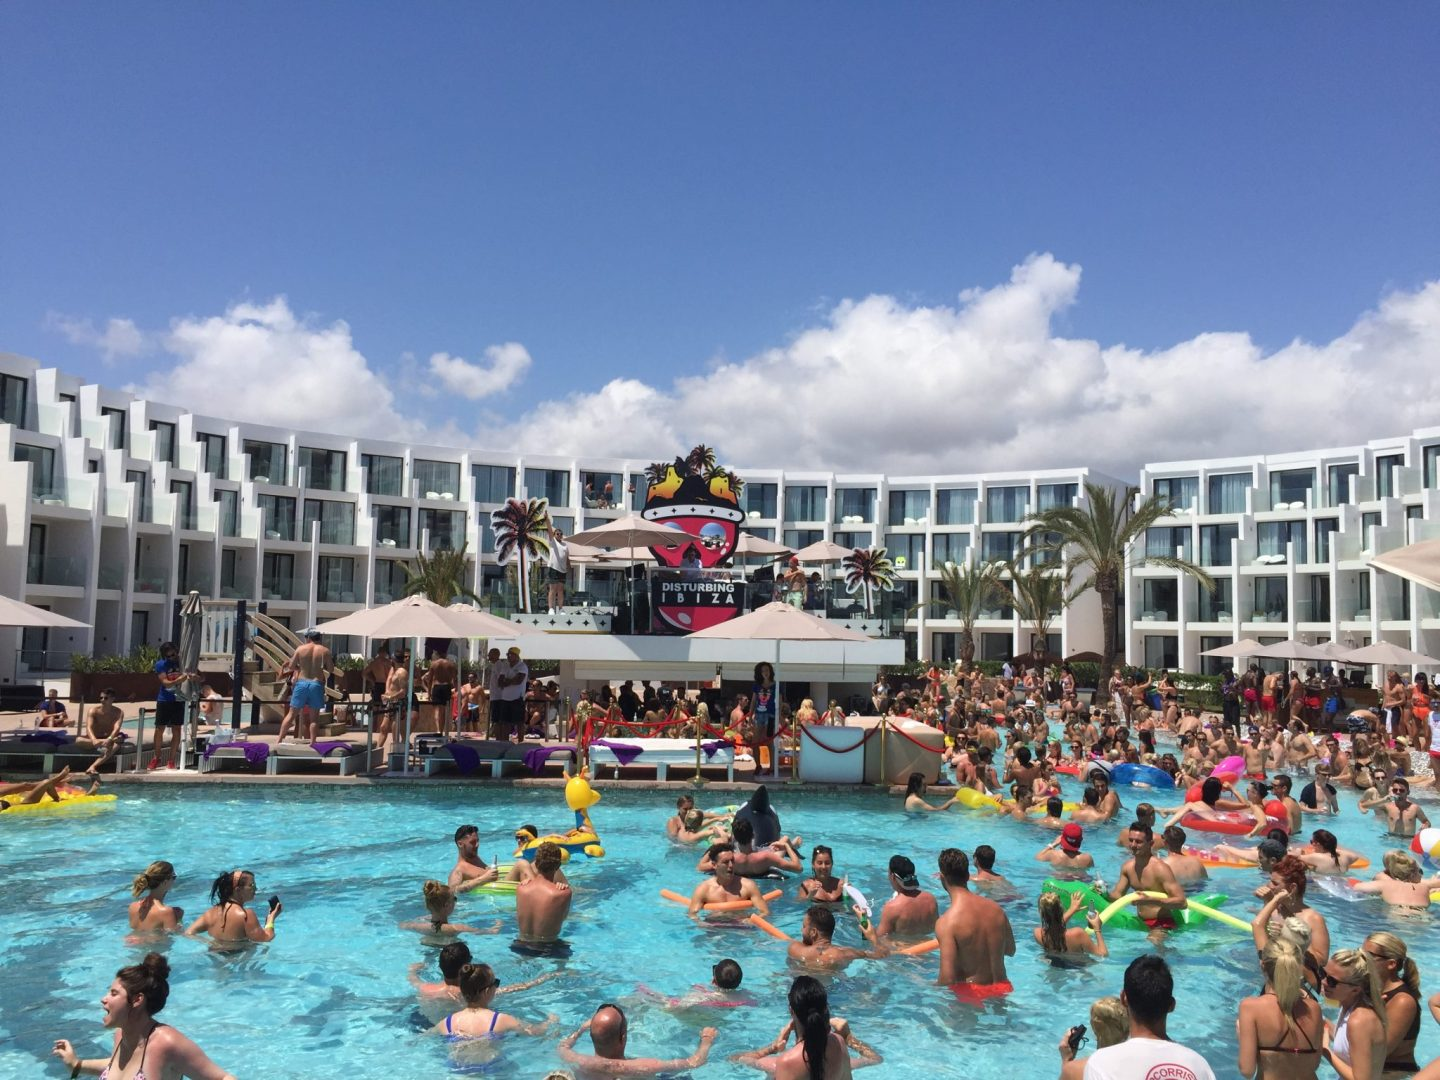 Inflatables at the pool for the pool party at Hard Rock Hotel Ibiza